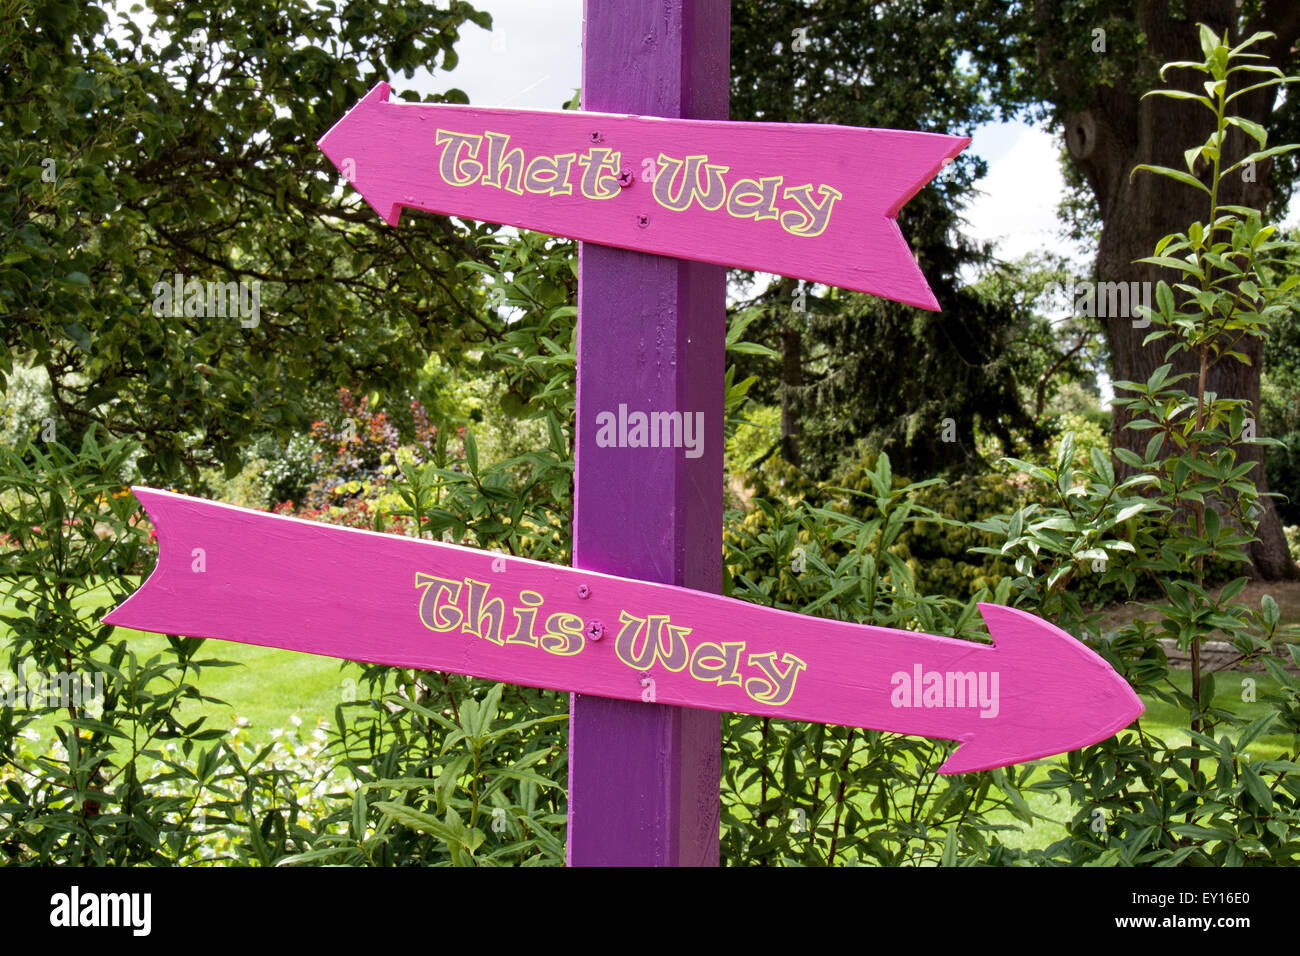 A fun and confusing sign of this way and that way - take your pick! - Stock Image